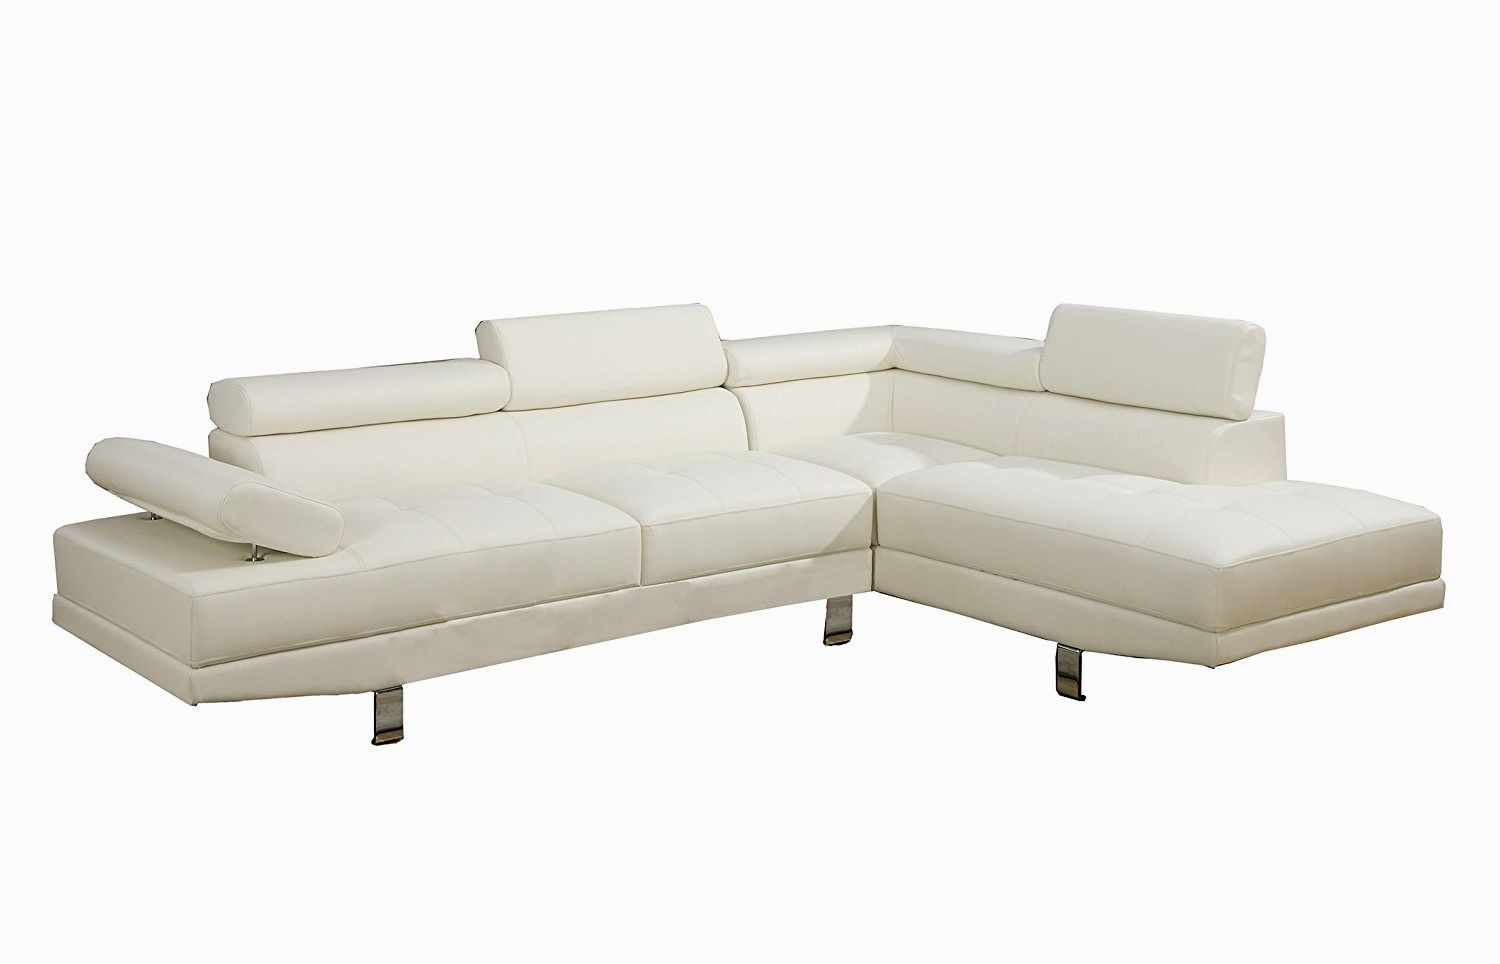 fresh leather sofas on sale image-Fancy Leather sofas On Sale Construction